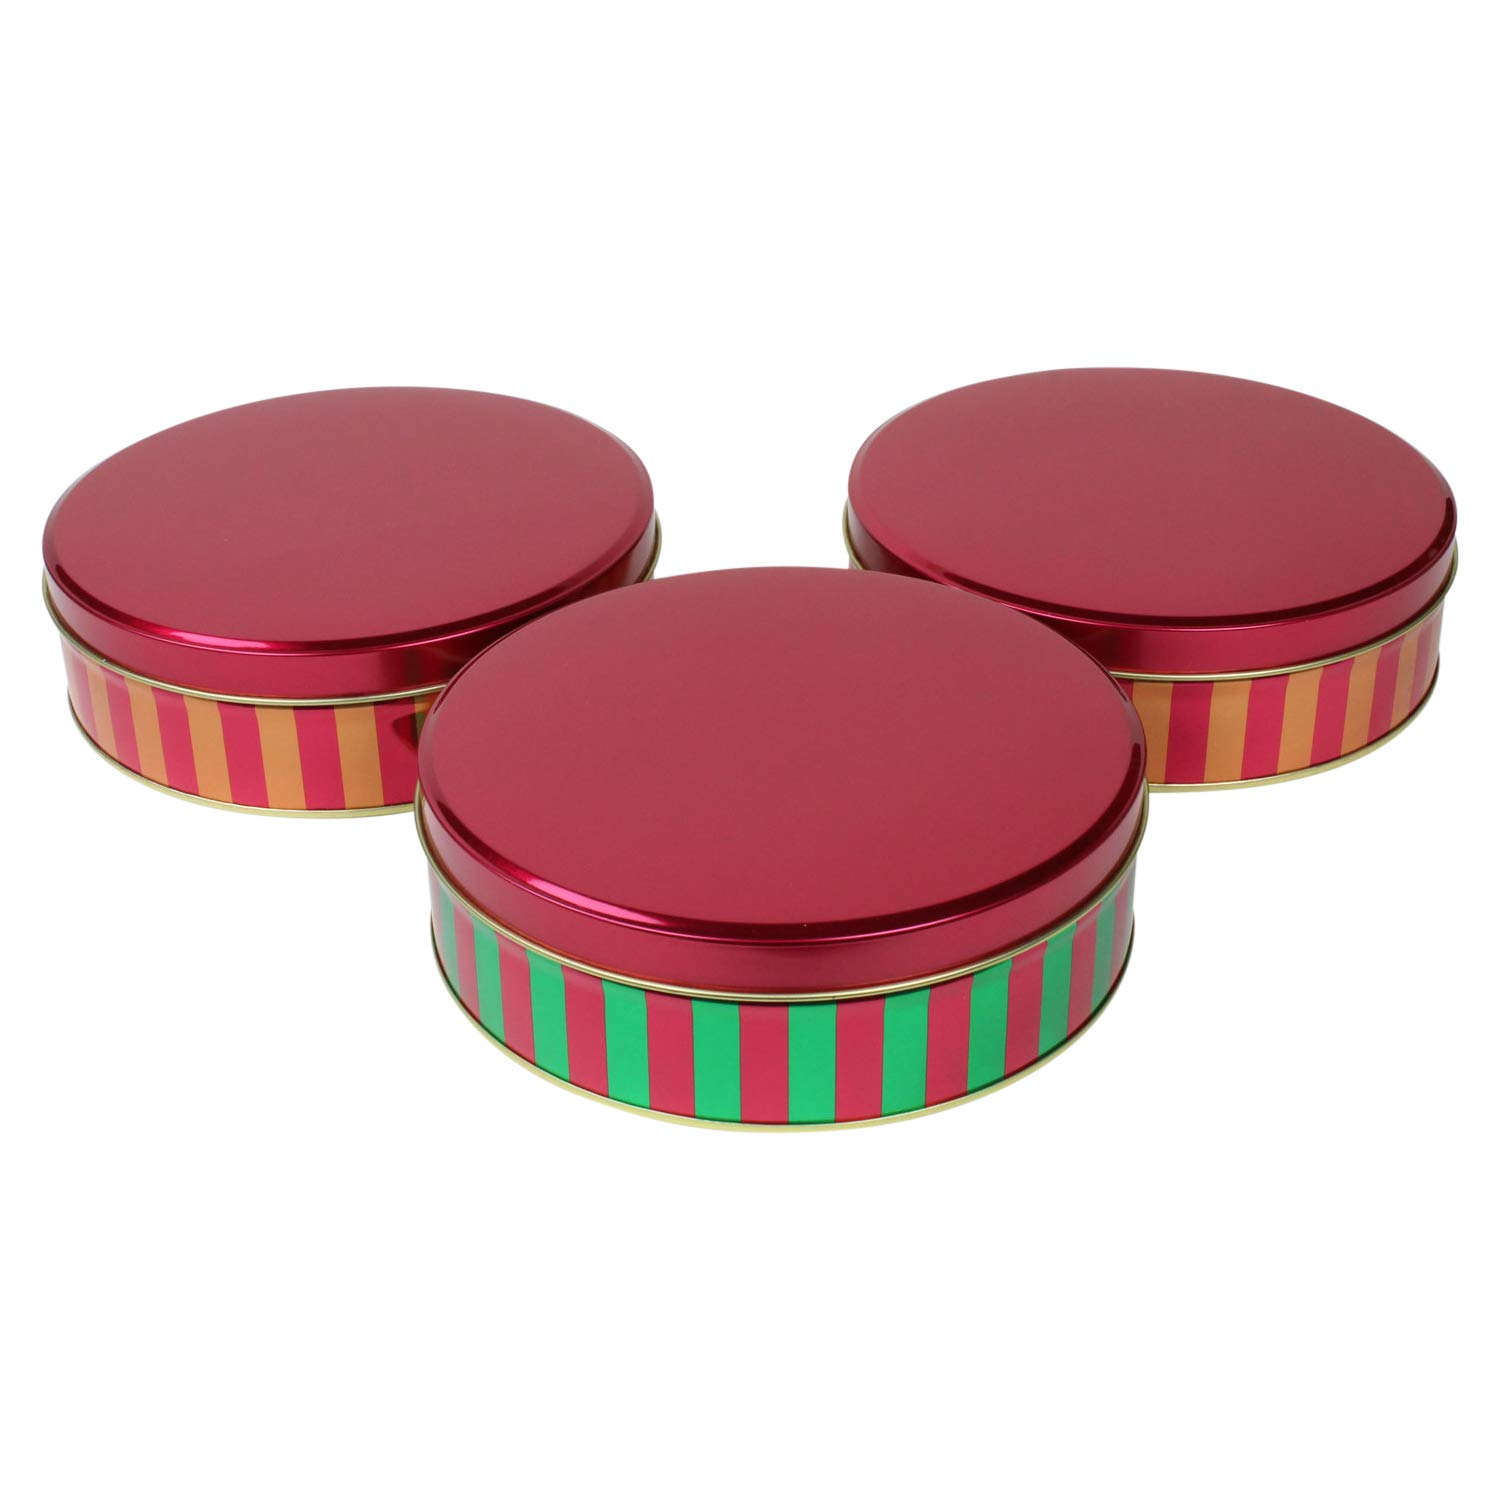 Christmas Striped Metallic Christmas Cookie Tins - Set of 3 LNK